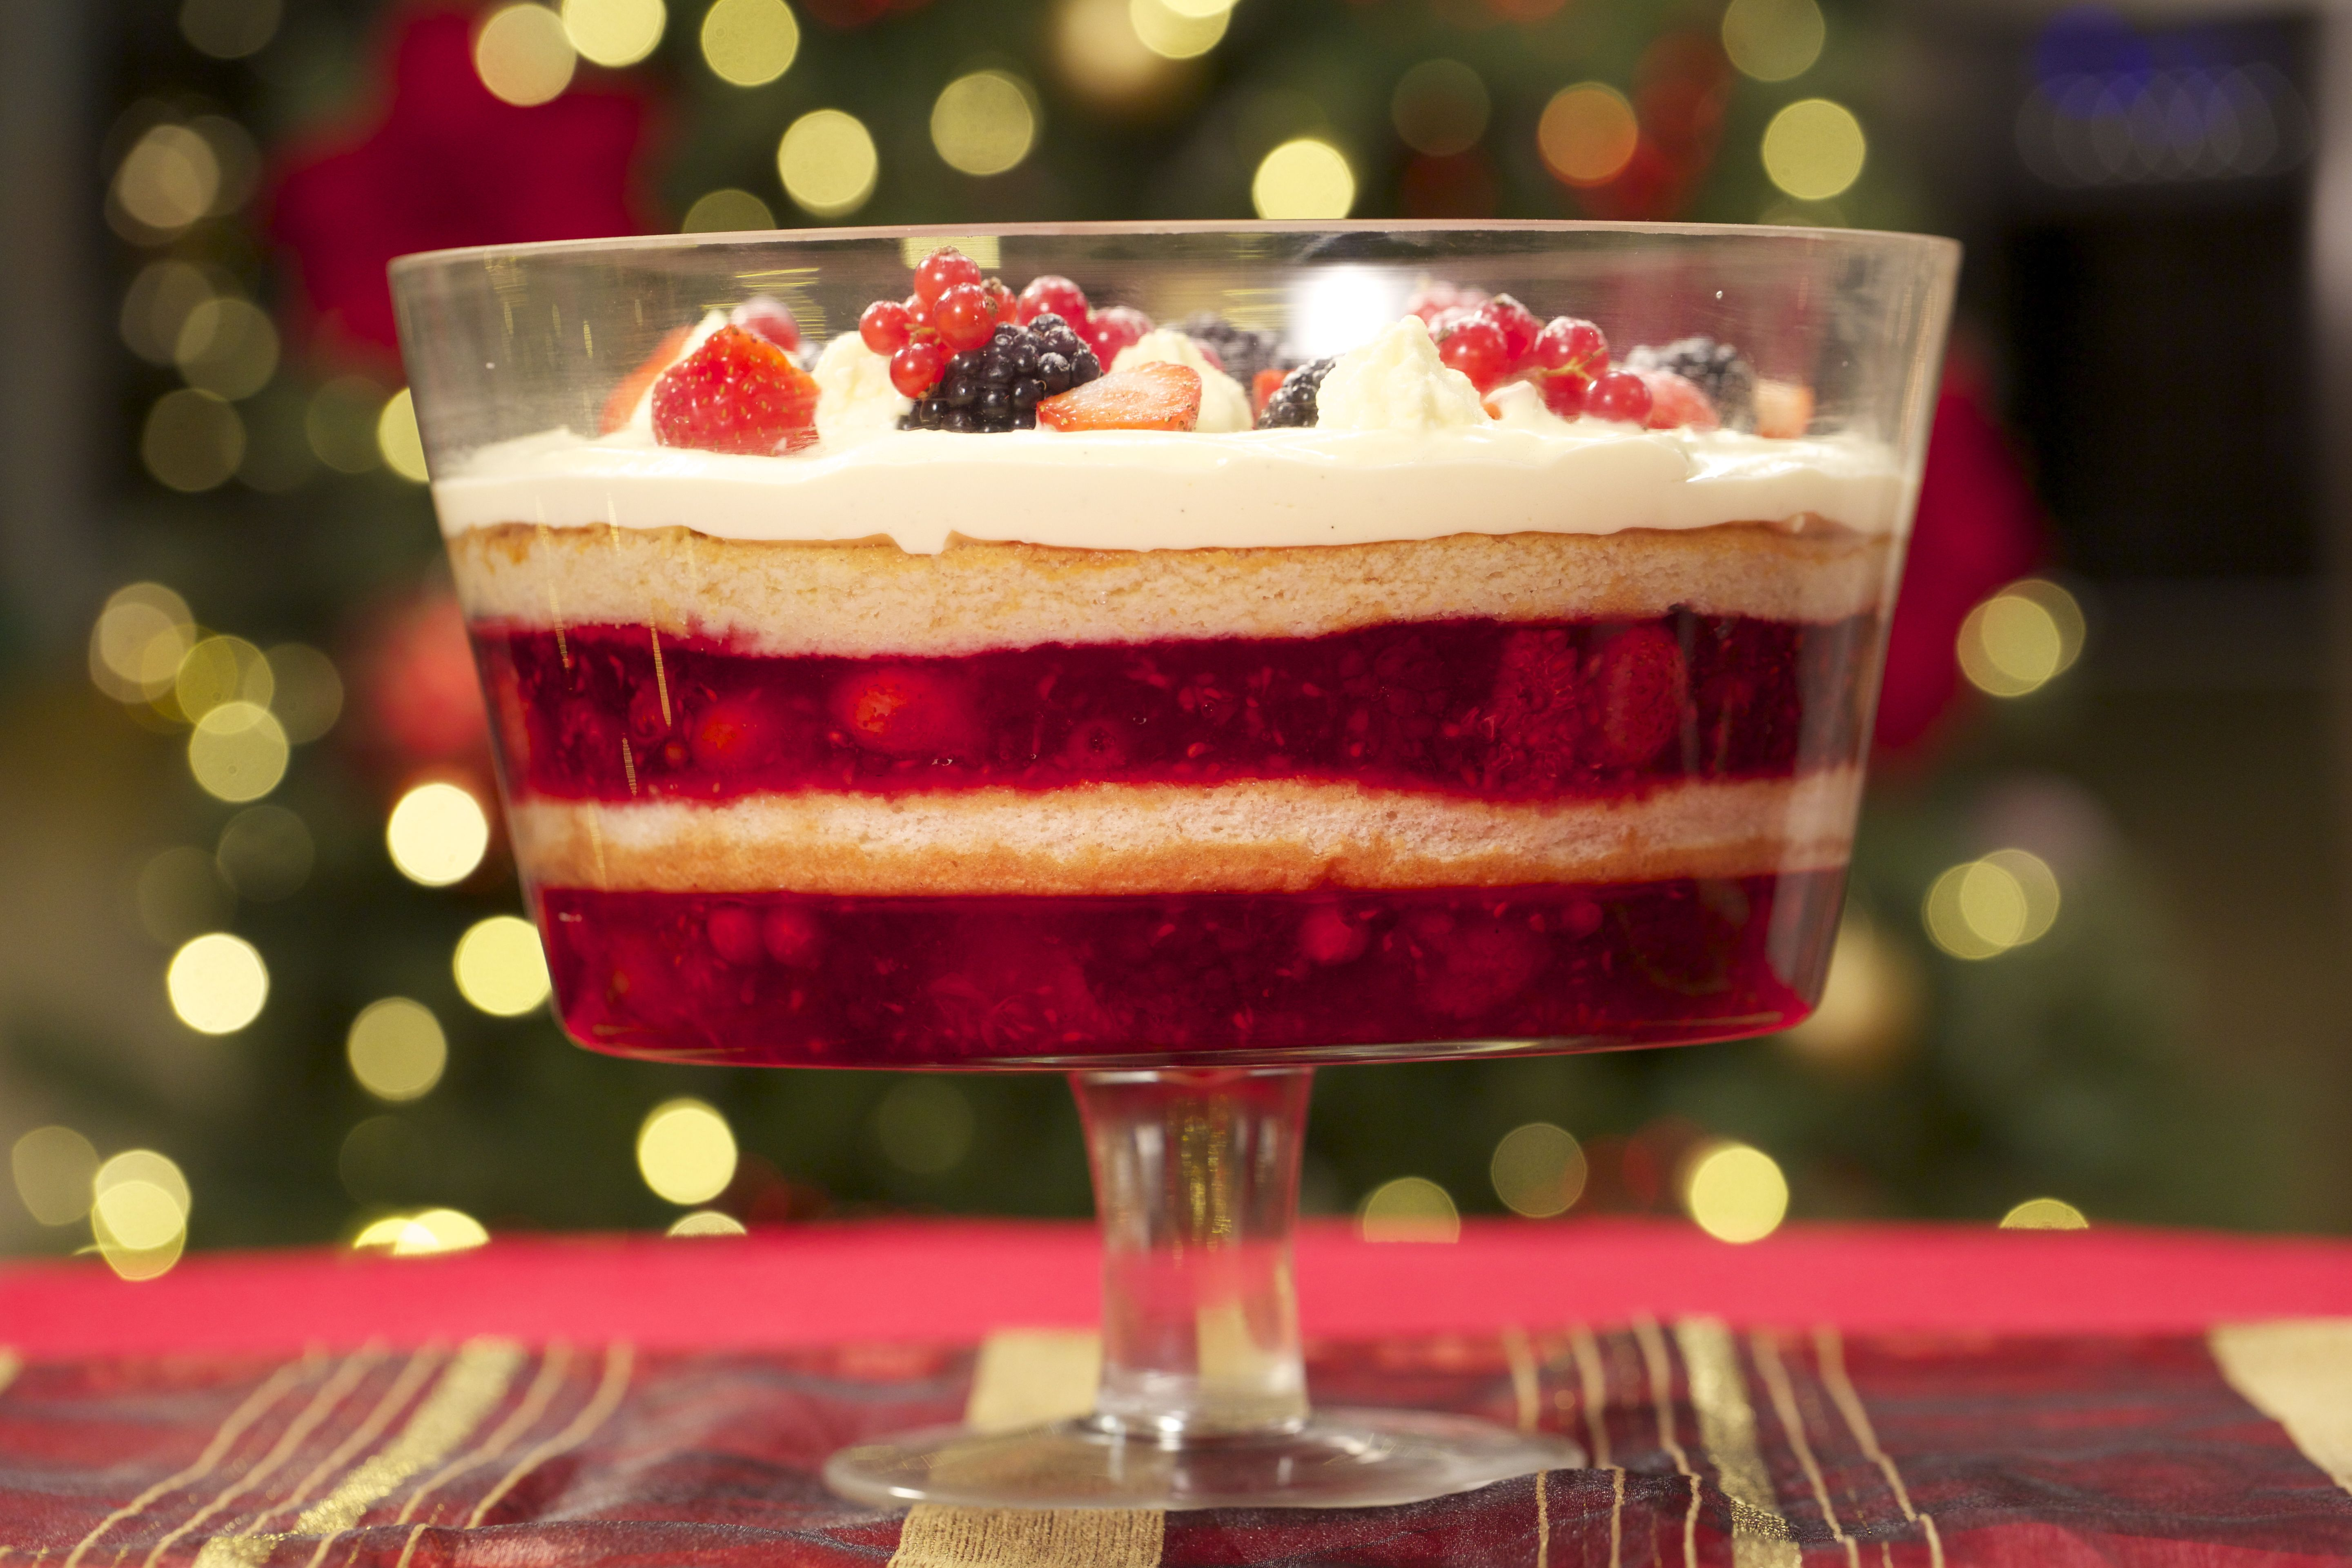 Michael caines ultimate party trifle side layers trifles my youll find the ultimate christmas trifle recipe and even more incredible feasts waiting to be devoured right here on food network uk forumfinder Images